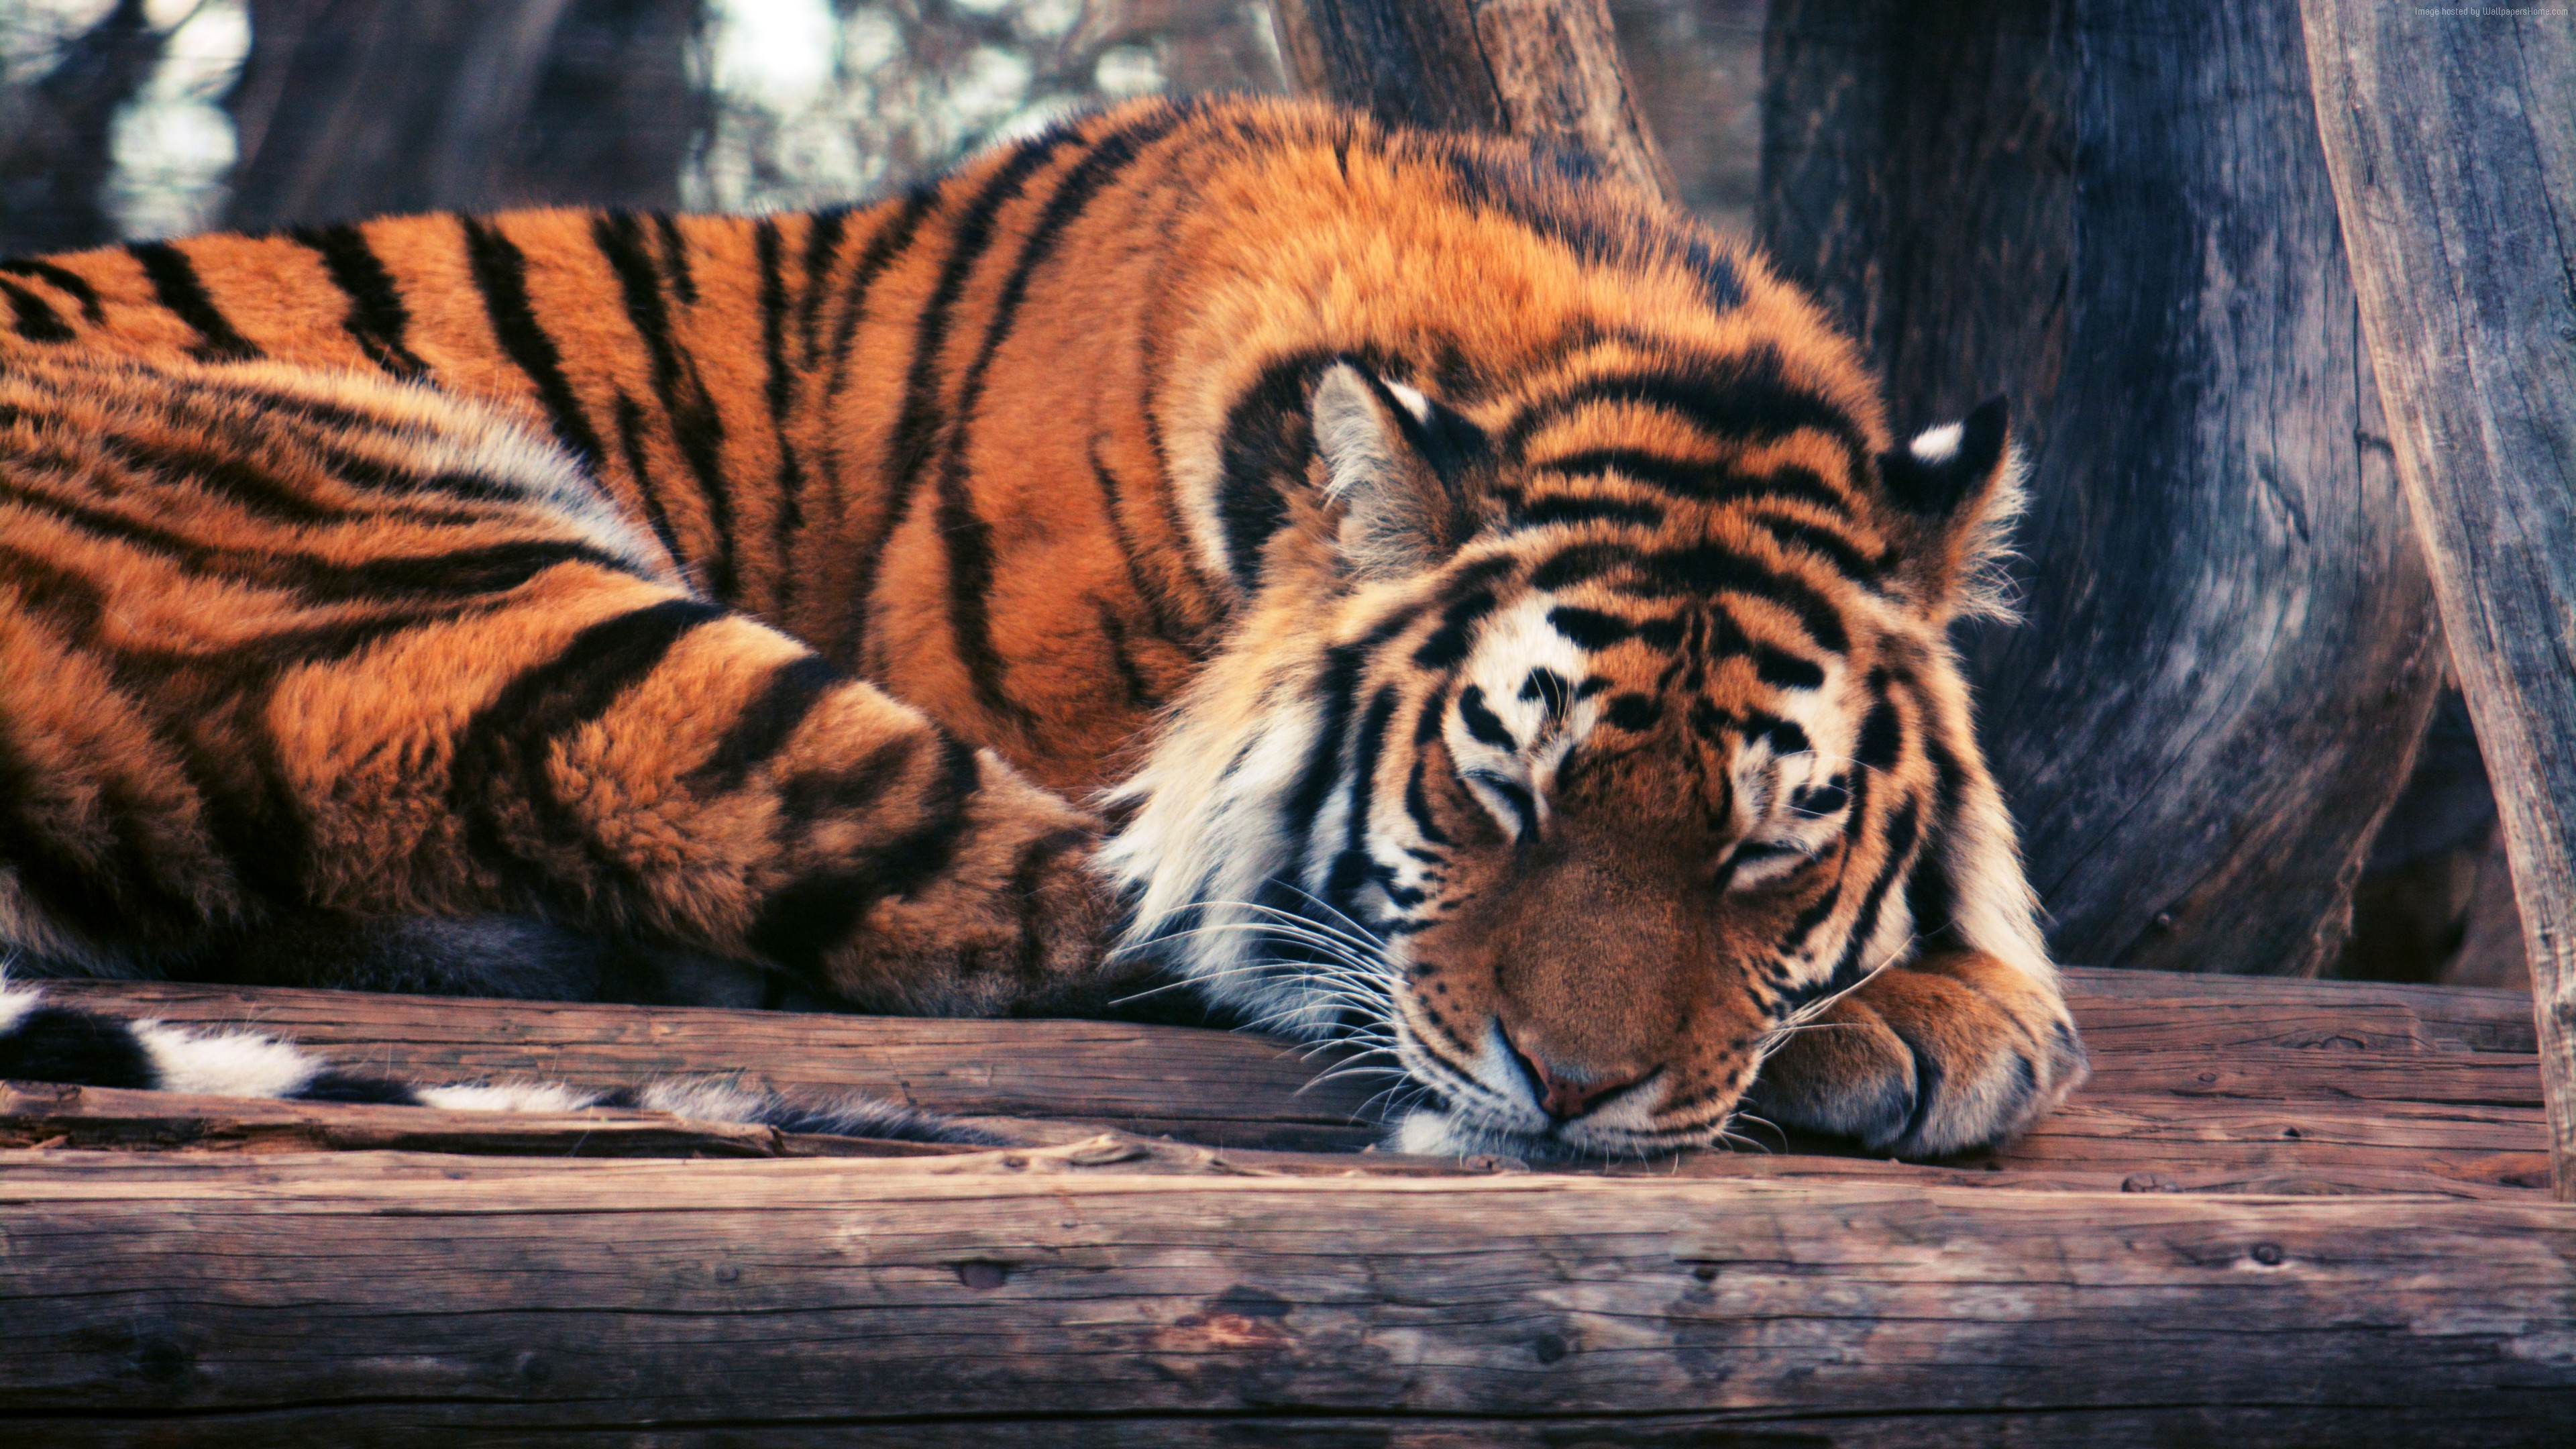 Wallpaper Tiger, cute animals, funny, Animals